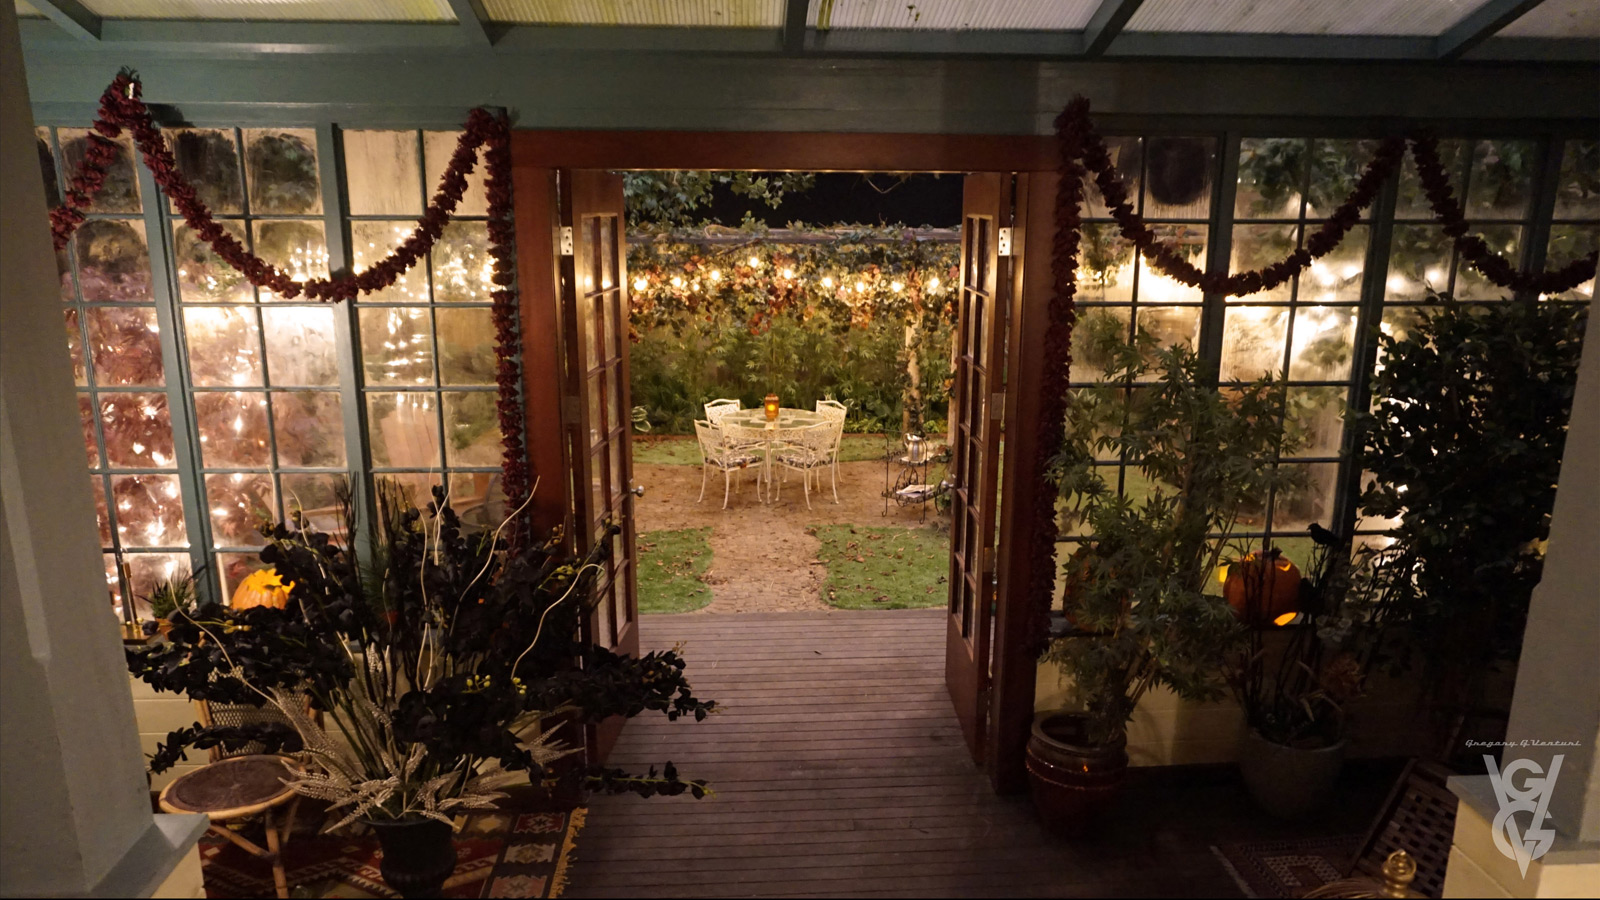 CHARMED: S1 - VERA MANOR - BACK YARD - SET PHOTO